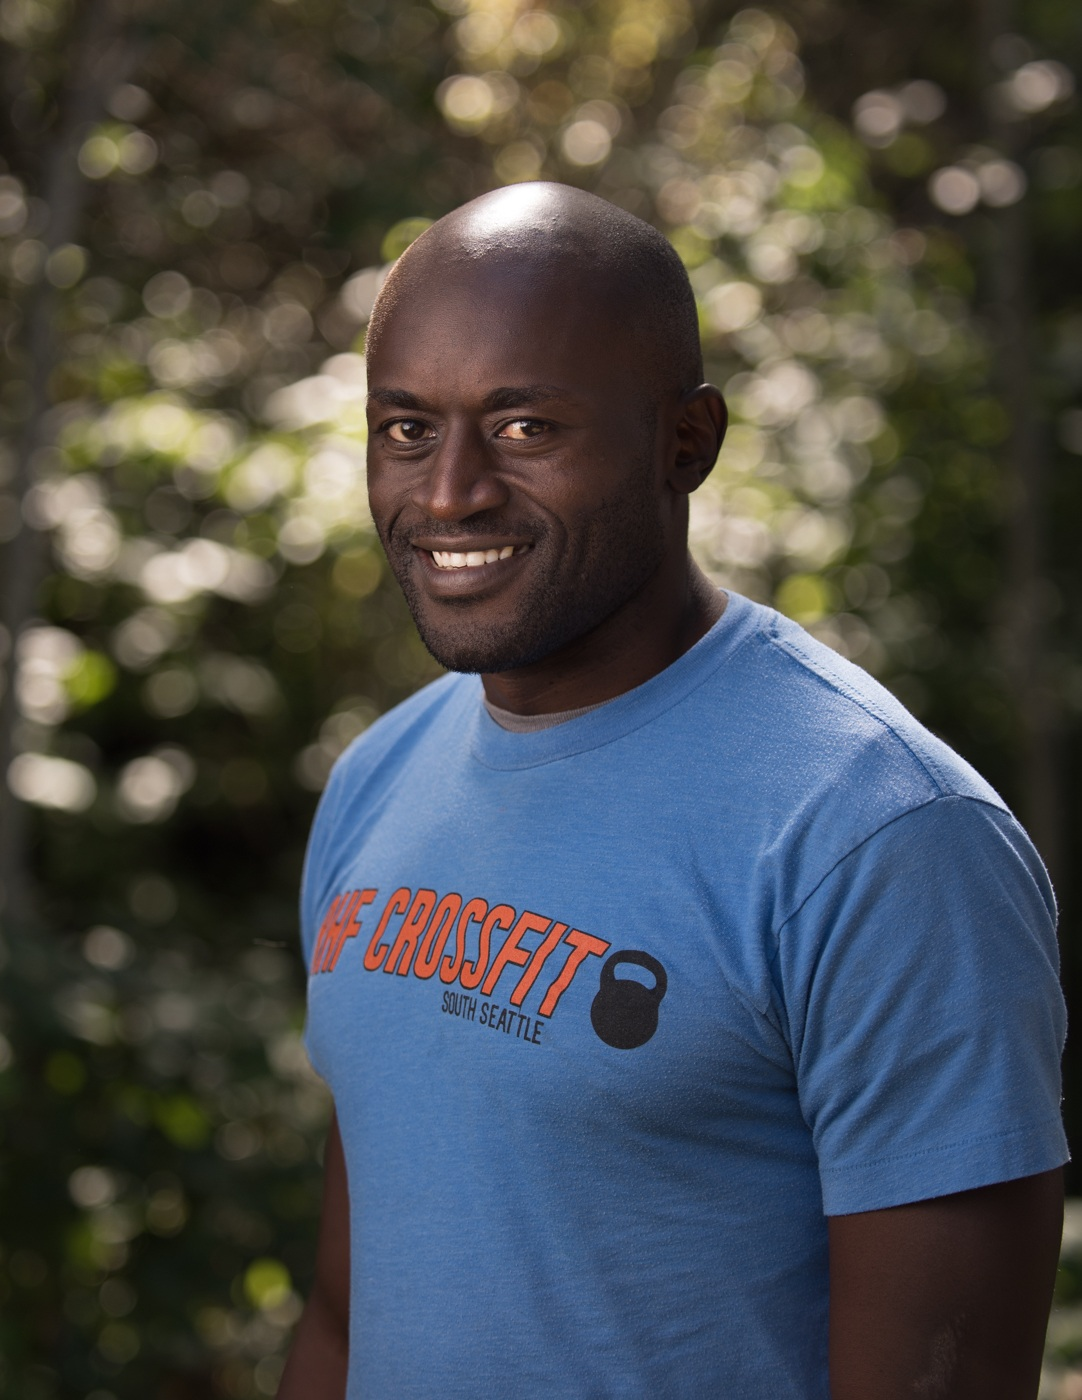 Patrick Otieno<span>Rainier Health & Fitness<span>Manager</span>